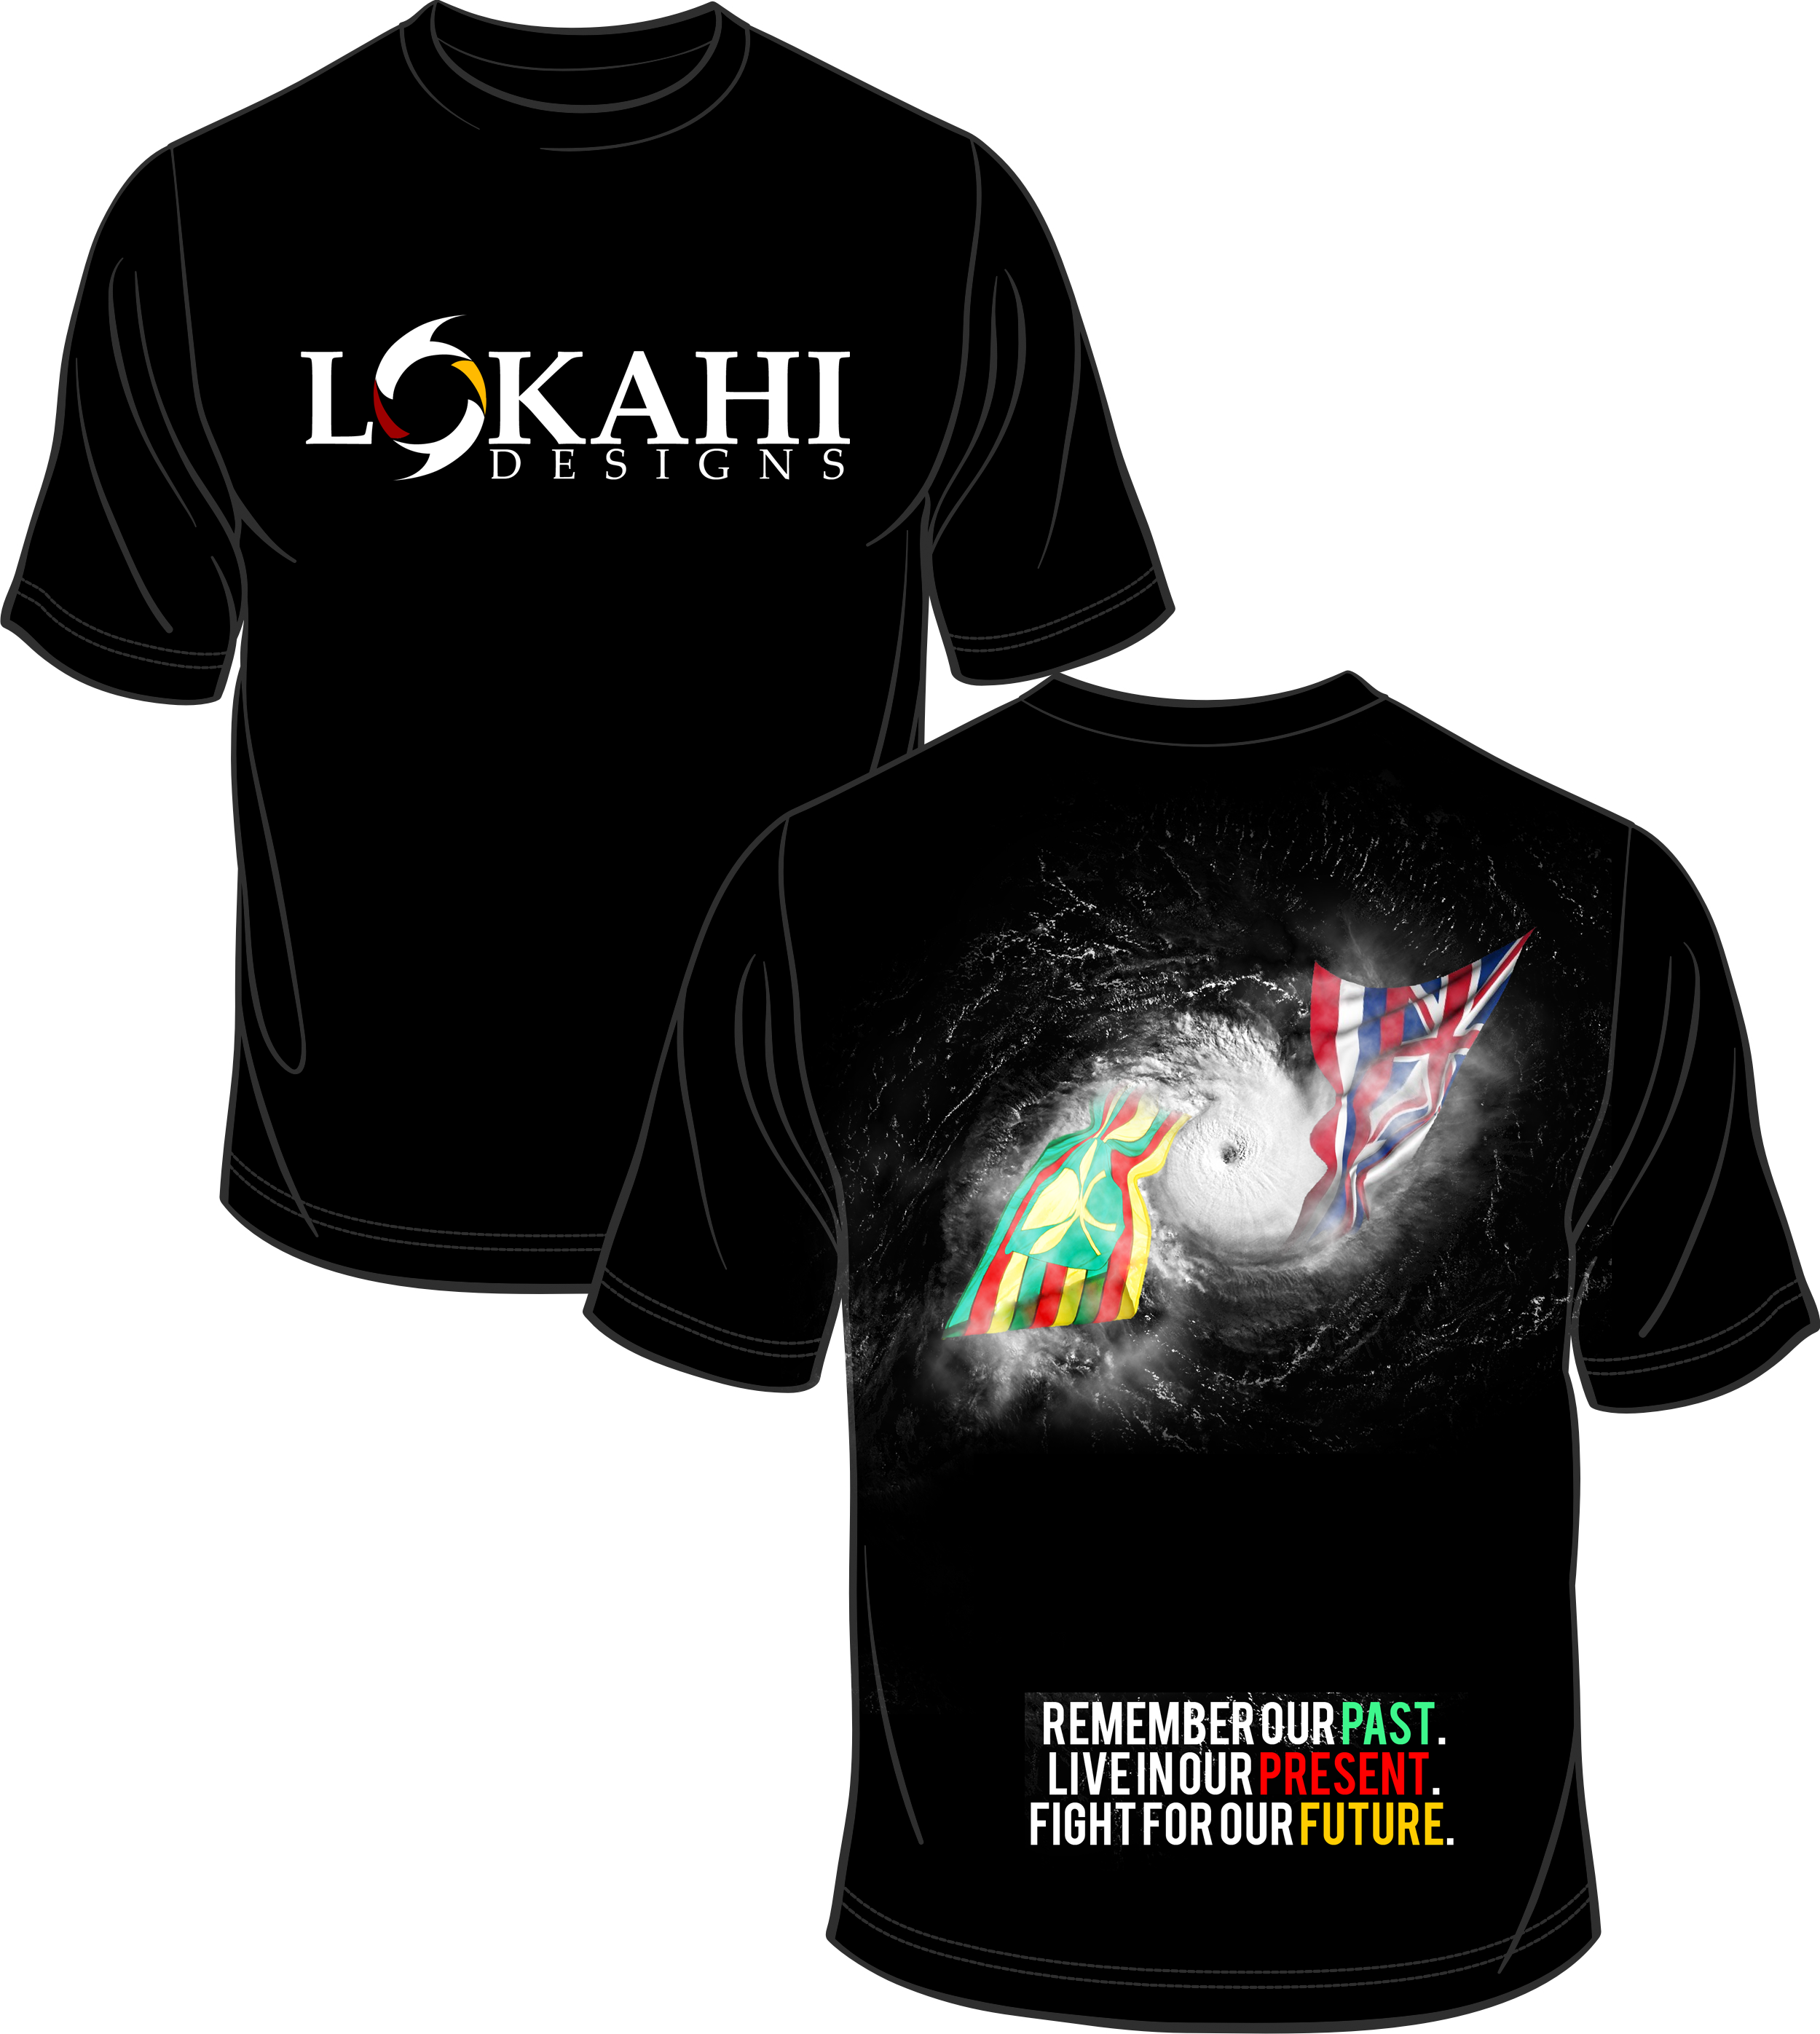 Clothing Design by Kenneth Joel - Entry No. 1 in the Clothing Design Contest Creative Clothing Design for LOKAHI designs.